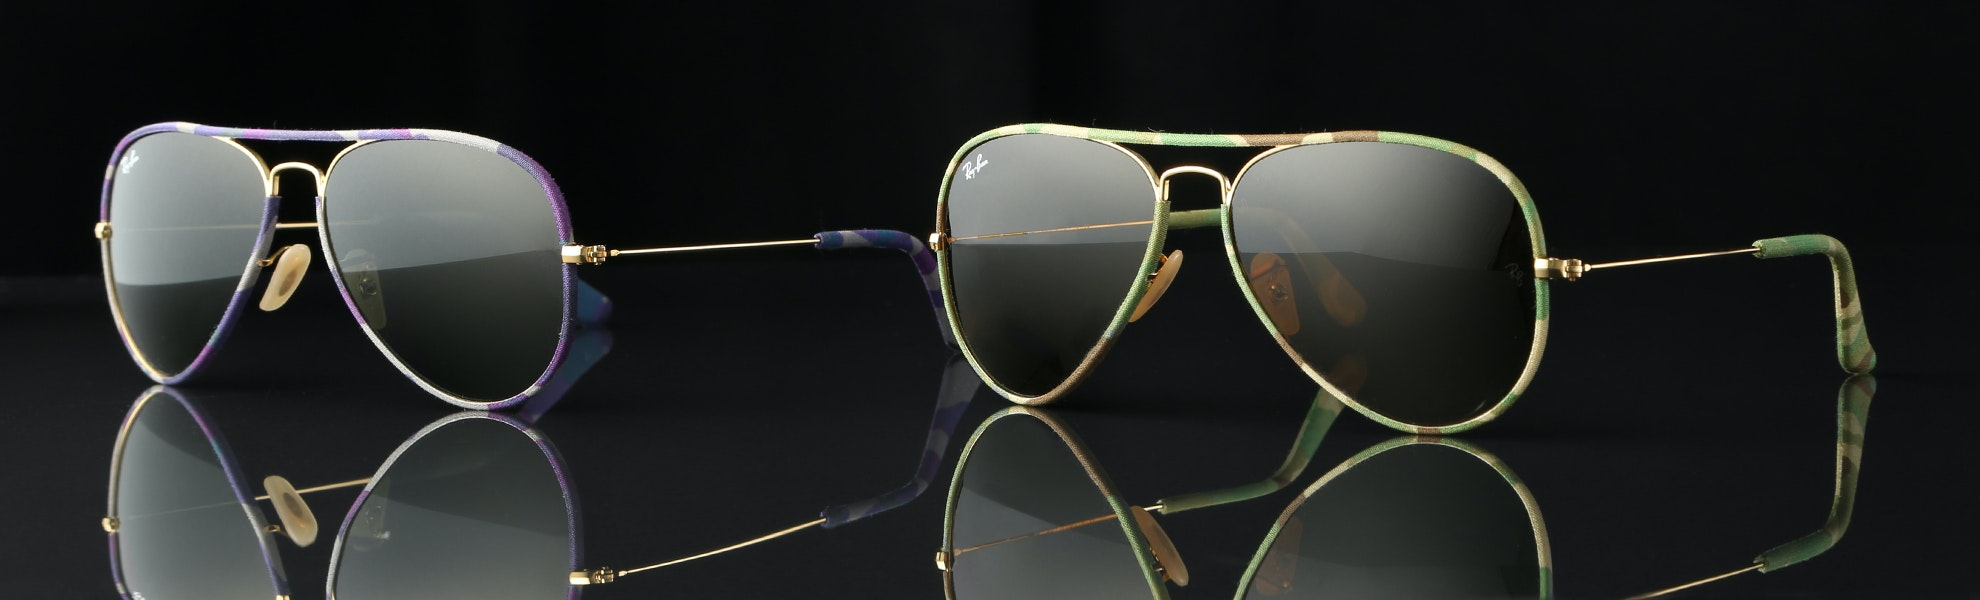 ray ban lowest price  Ray-Ban Aviator Camouflage Sunglasses - Lowest Price and Reviews ...